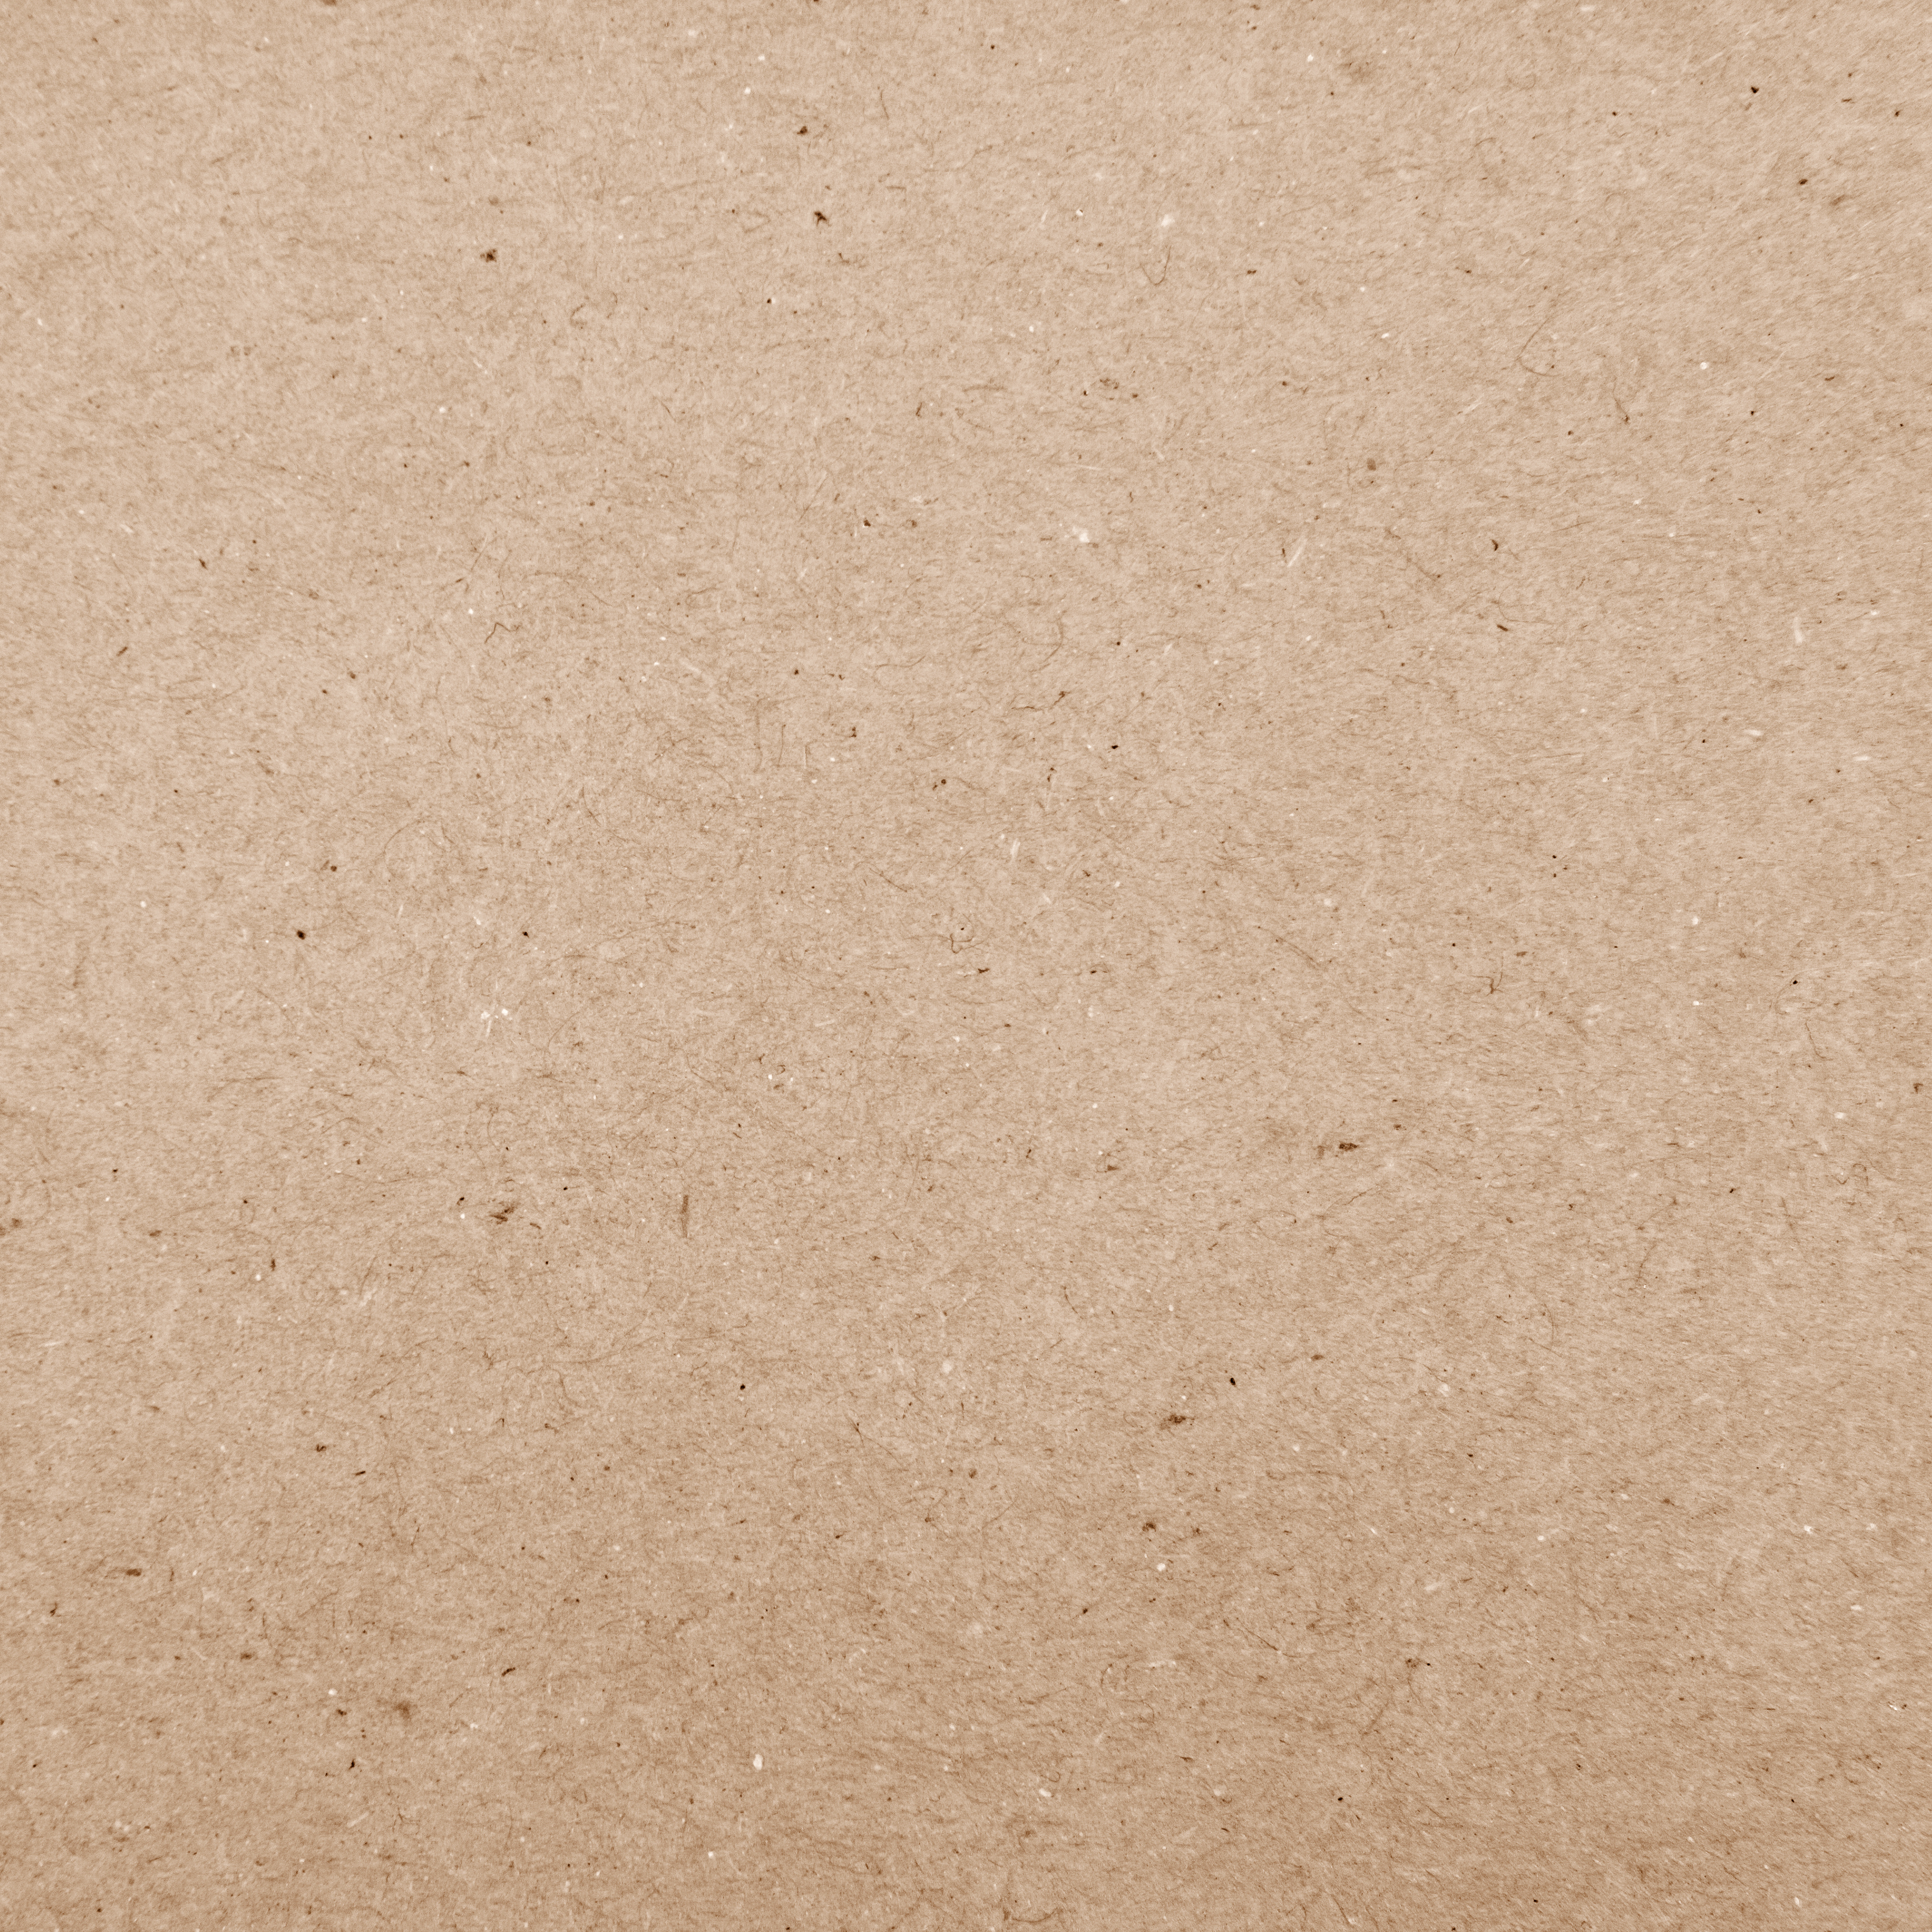 Paper Texture, Abstract, Backdrop, Brown, Light, HQ Photo